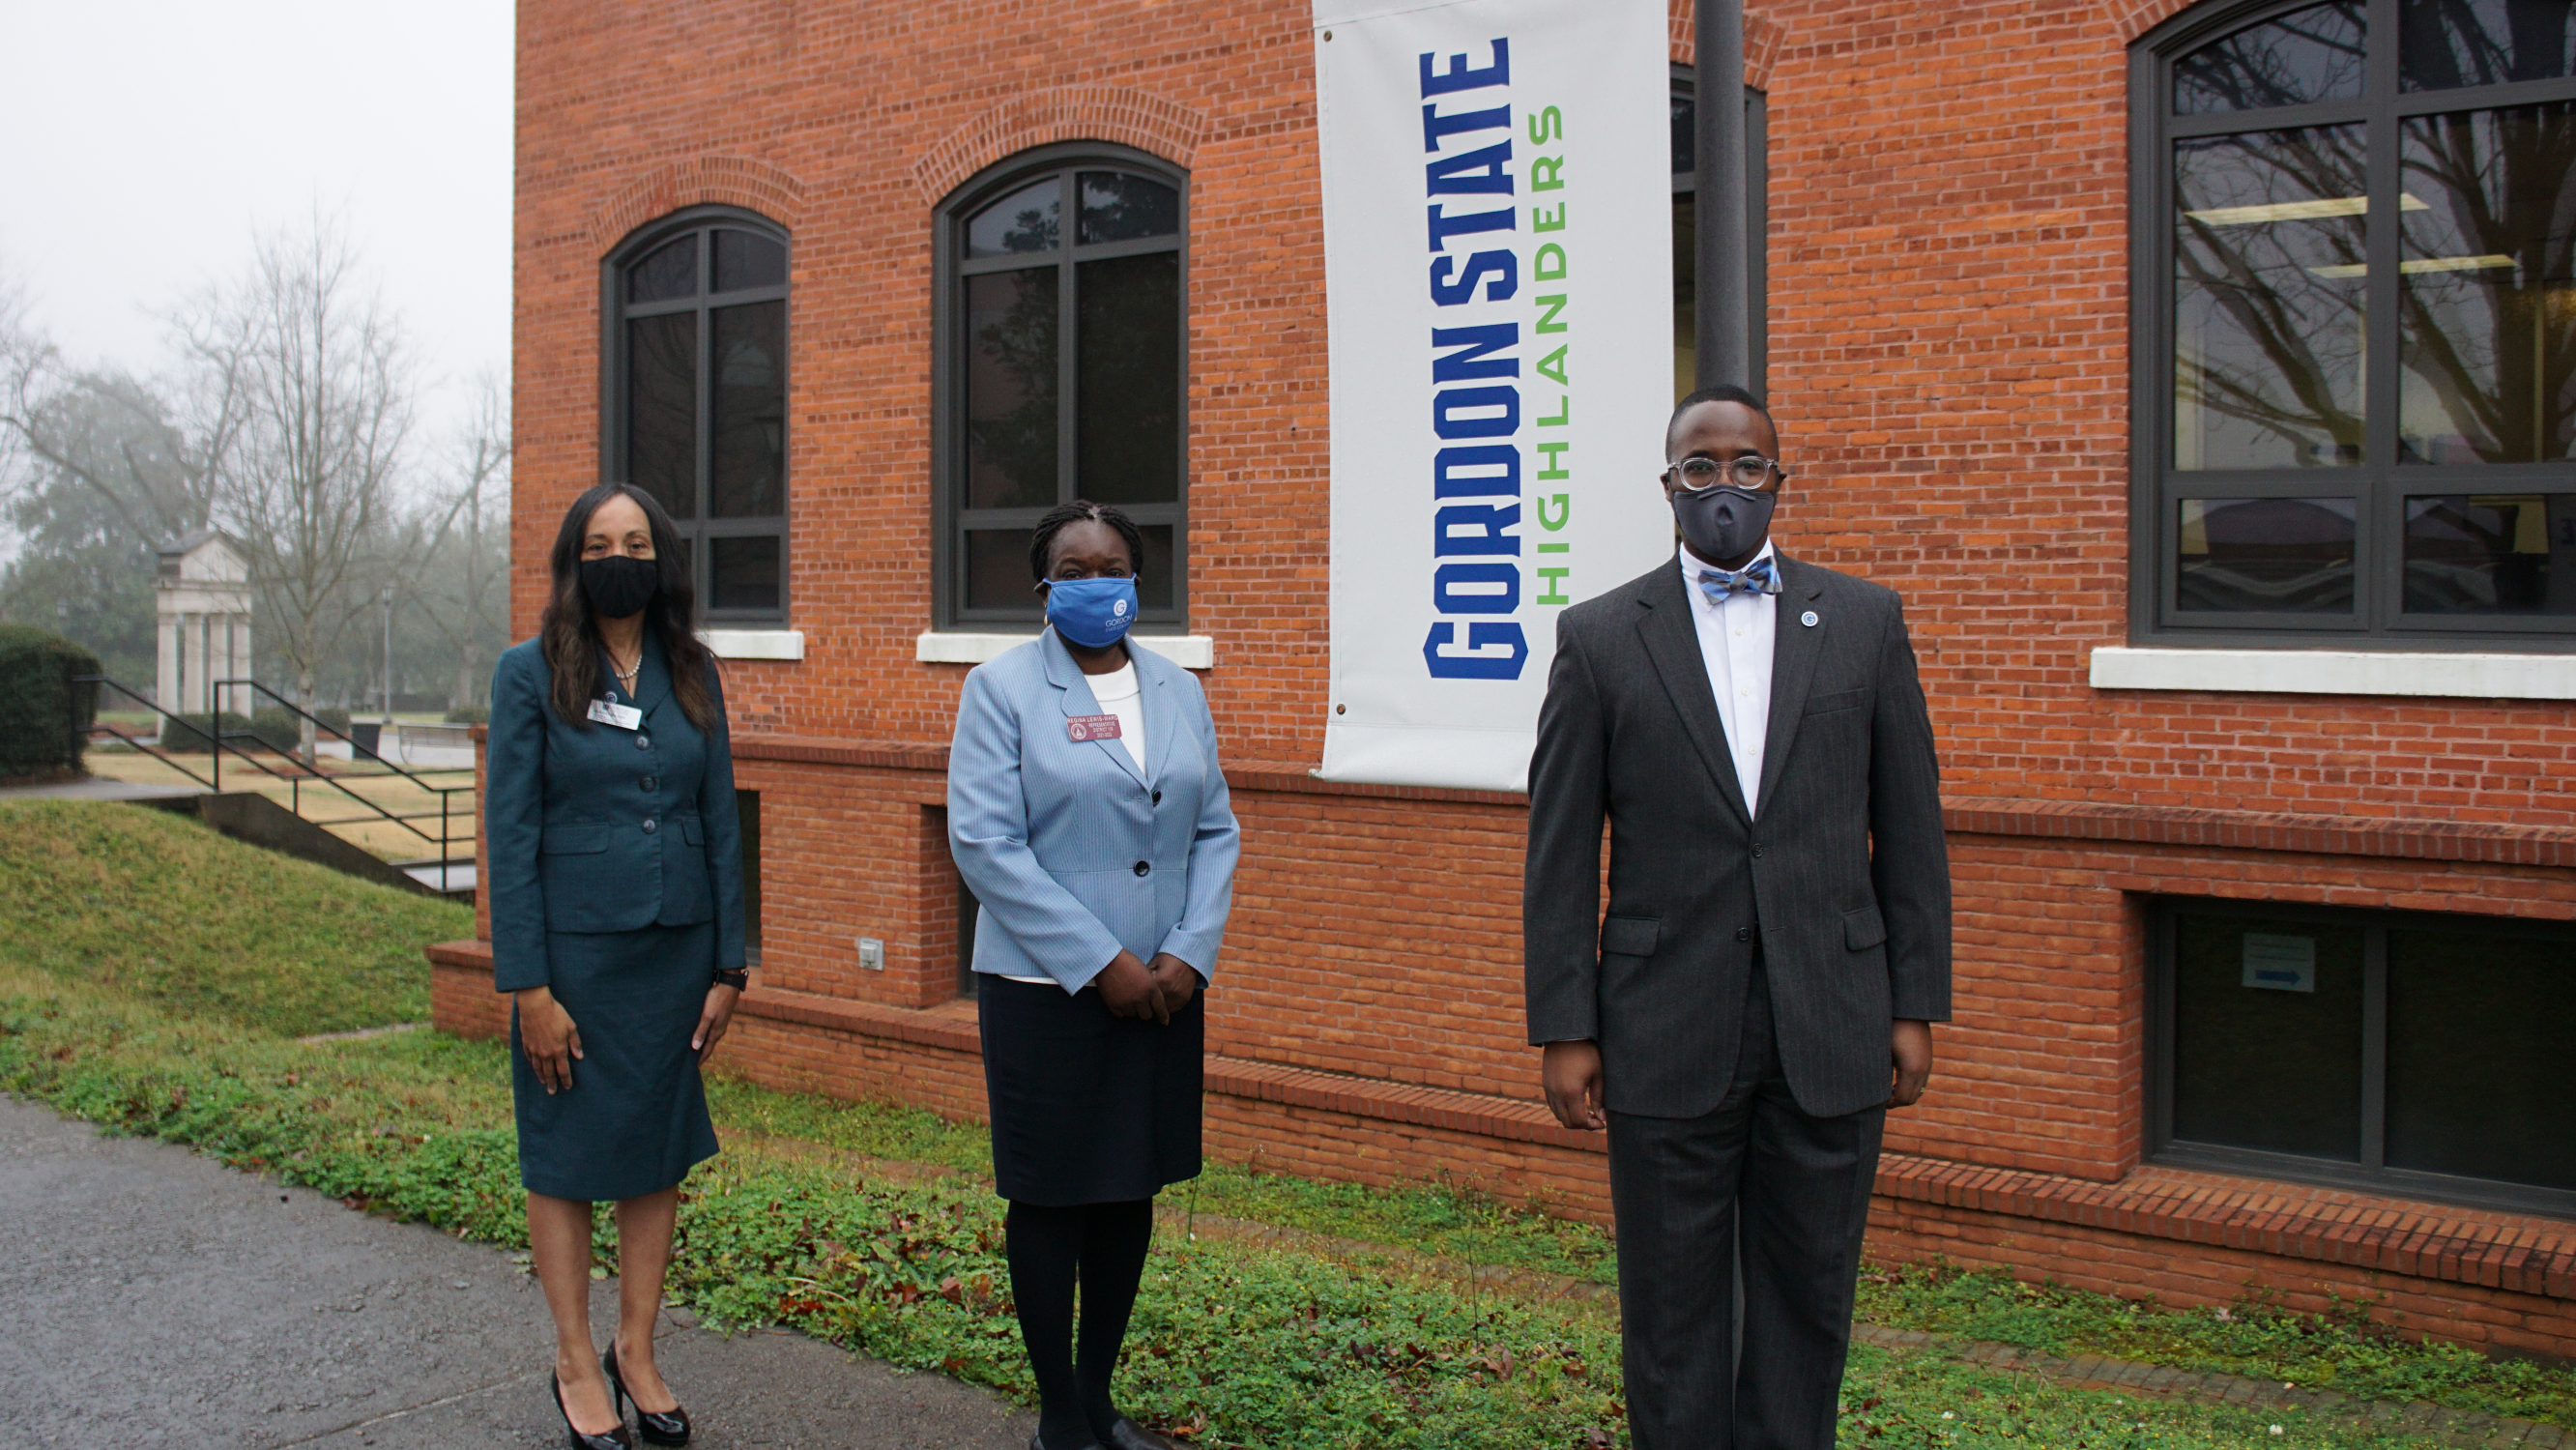 Montrese Adger Fuller, Executive Director of the GSC Foundation and Vice President for Advancement, External Relations and Marketing; Regina Lewis-Ward, Georgia House of Representatives member; and Dr. Kirk A. Nooks, GSC President.